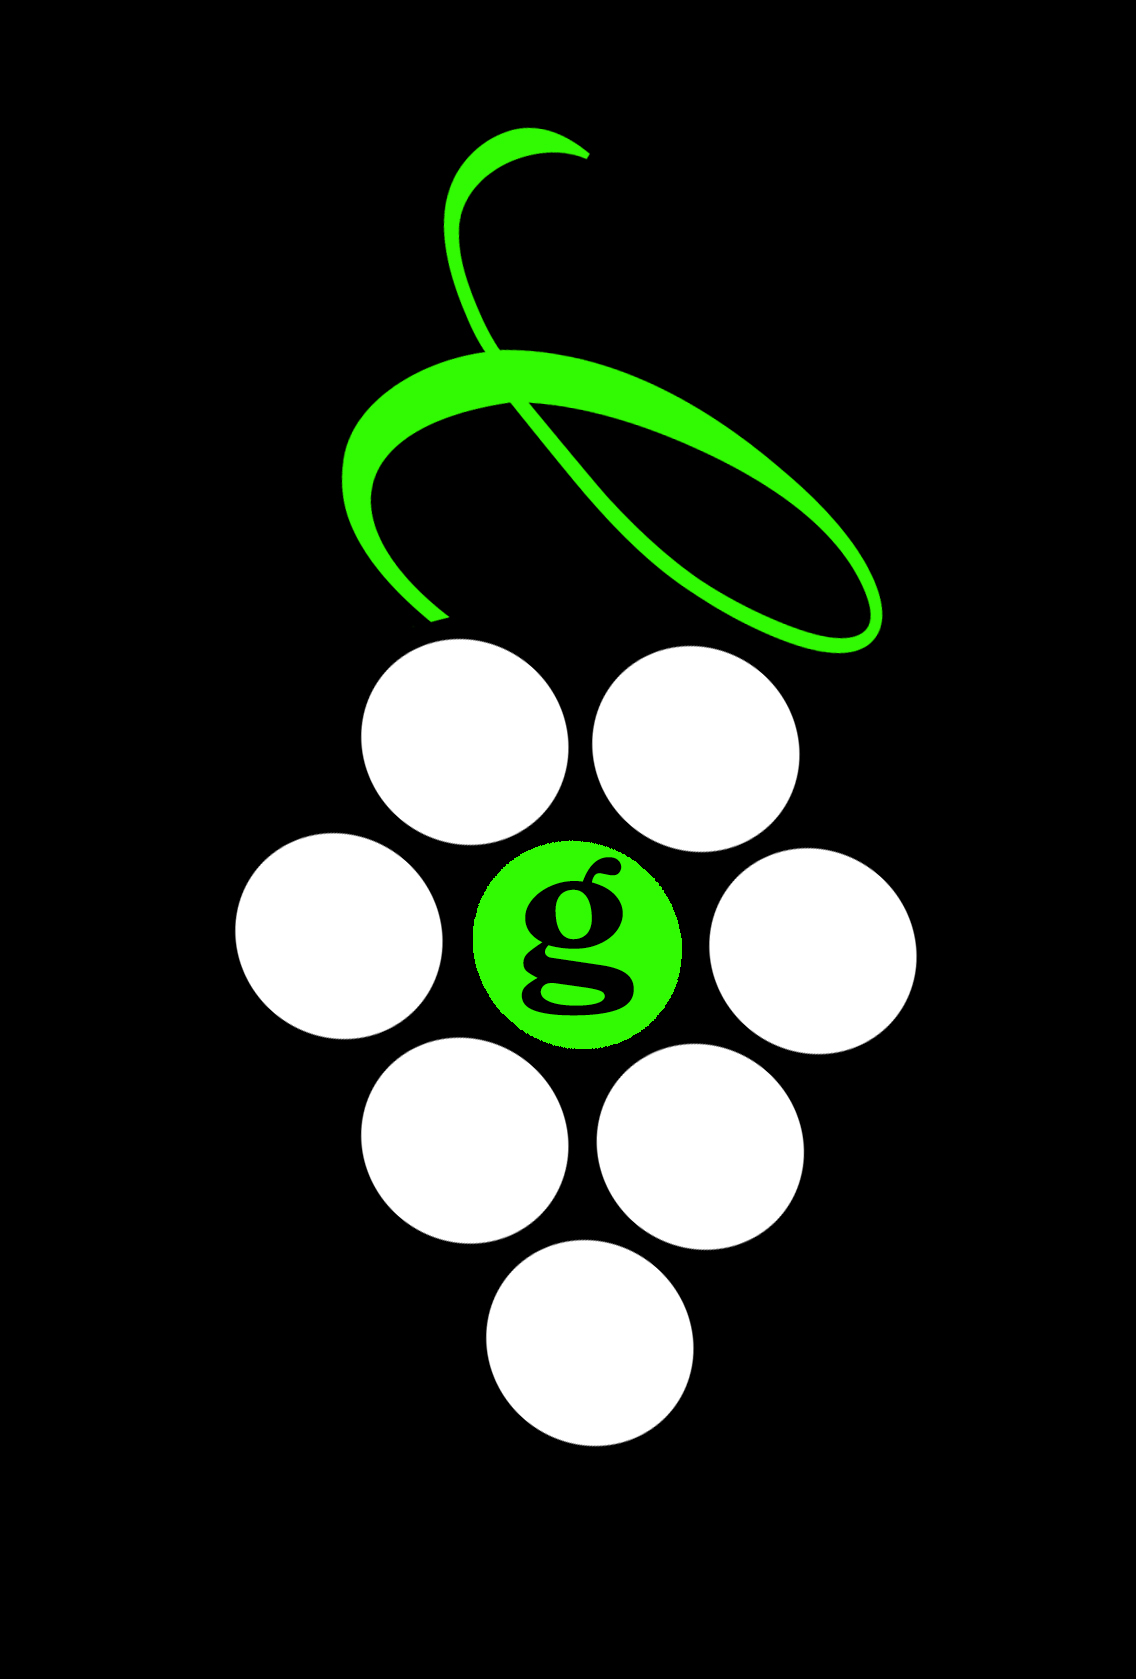 Grape graphic